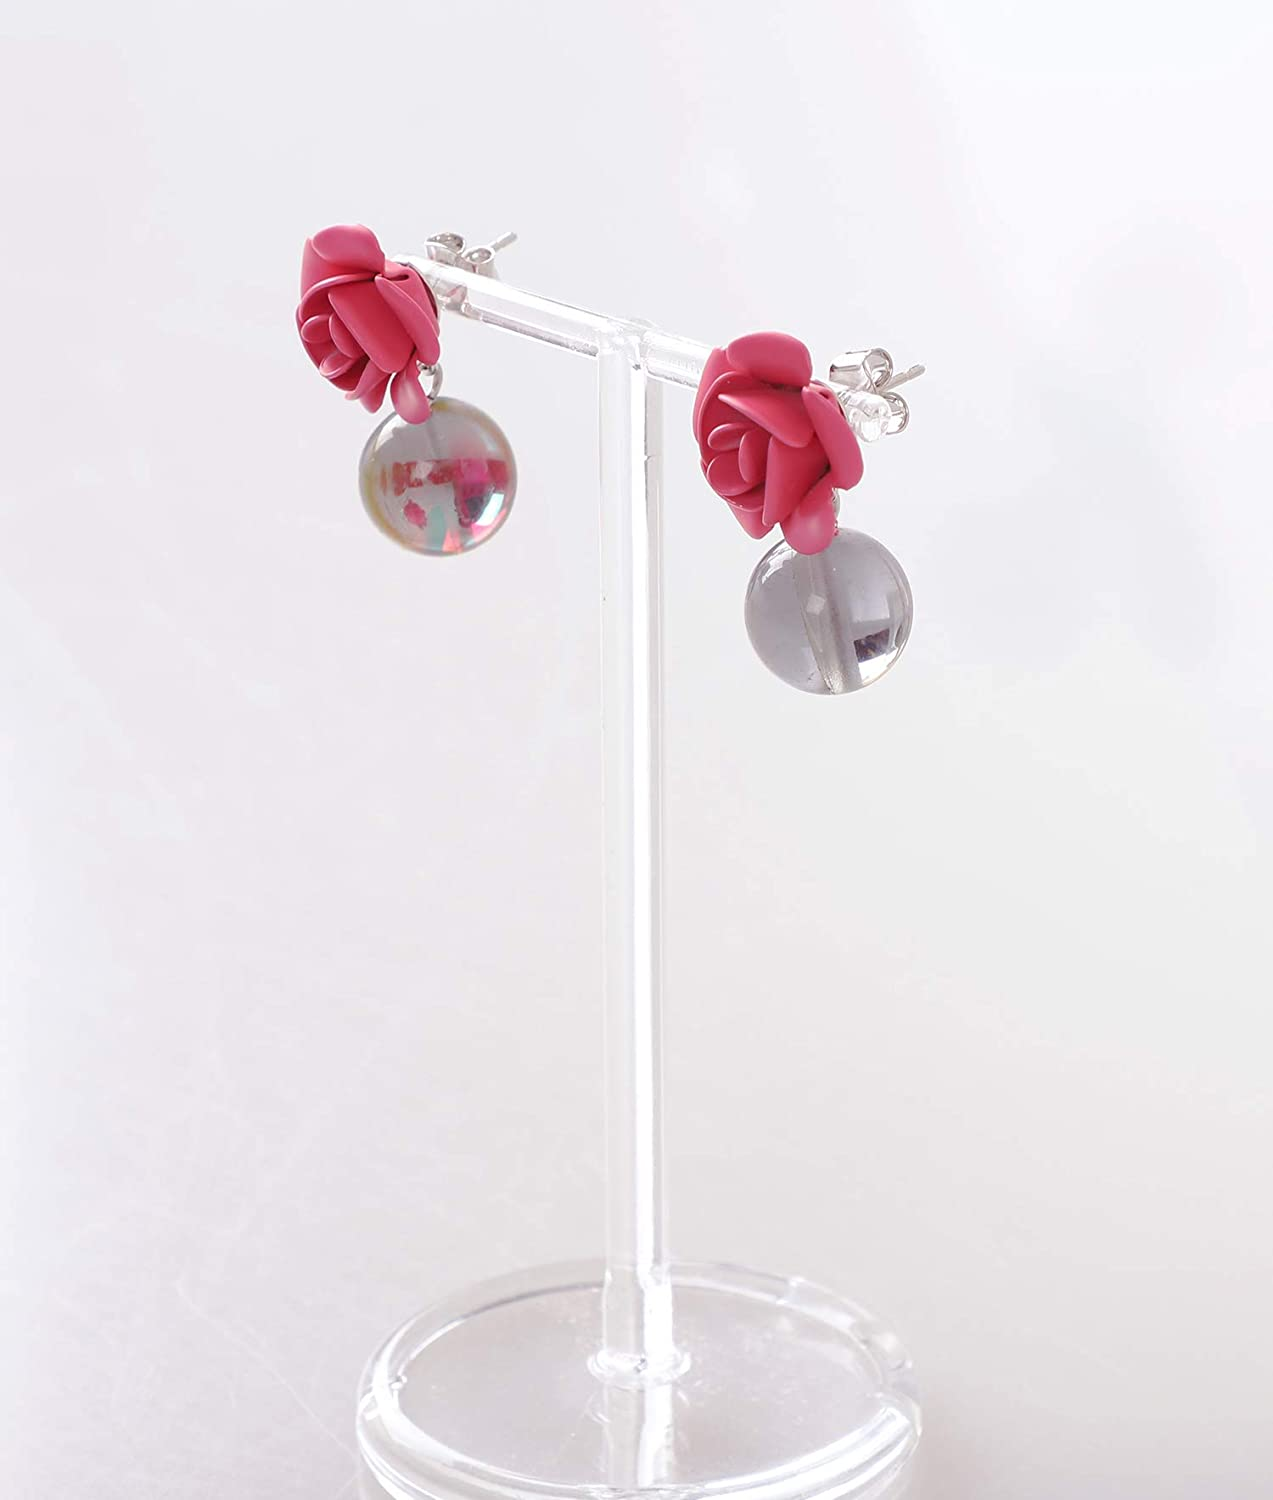 Handcraft Synthetic Quartz Brass Post Finish Comes with Gift Package//K-POP Korea Style Heavens Hailey Lovely Rose Drop/& Dangle Earrings Dazzling Moment